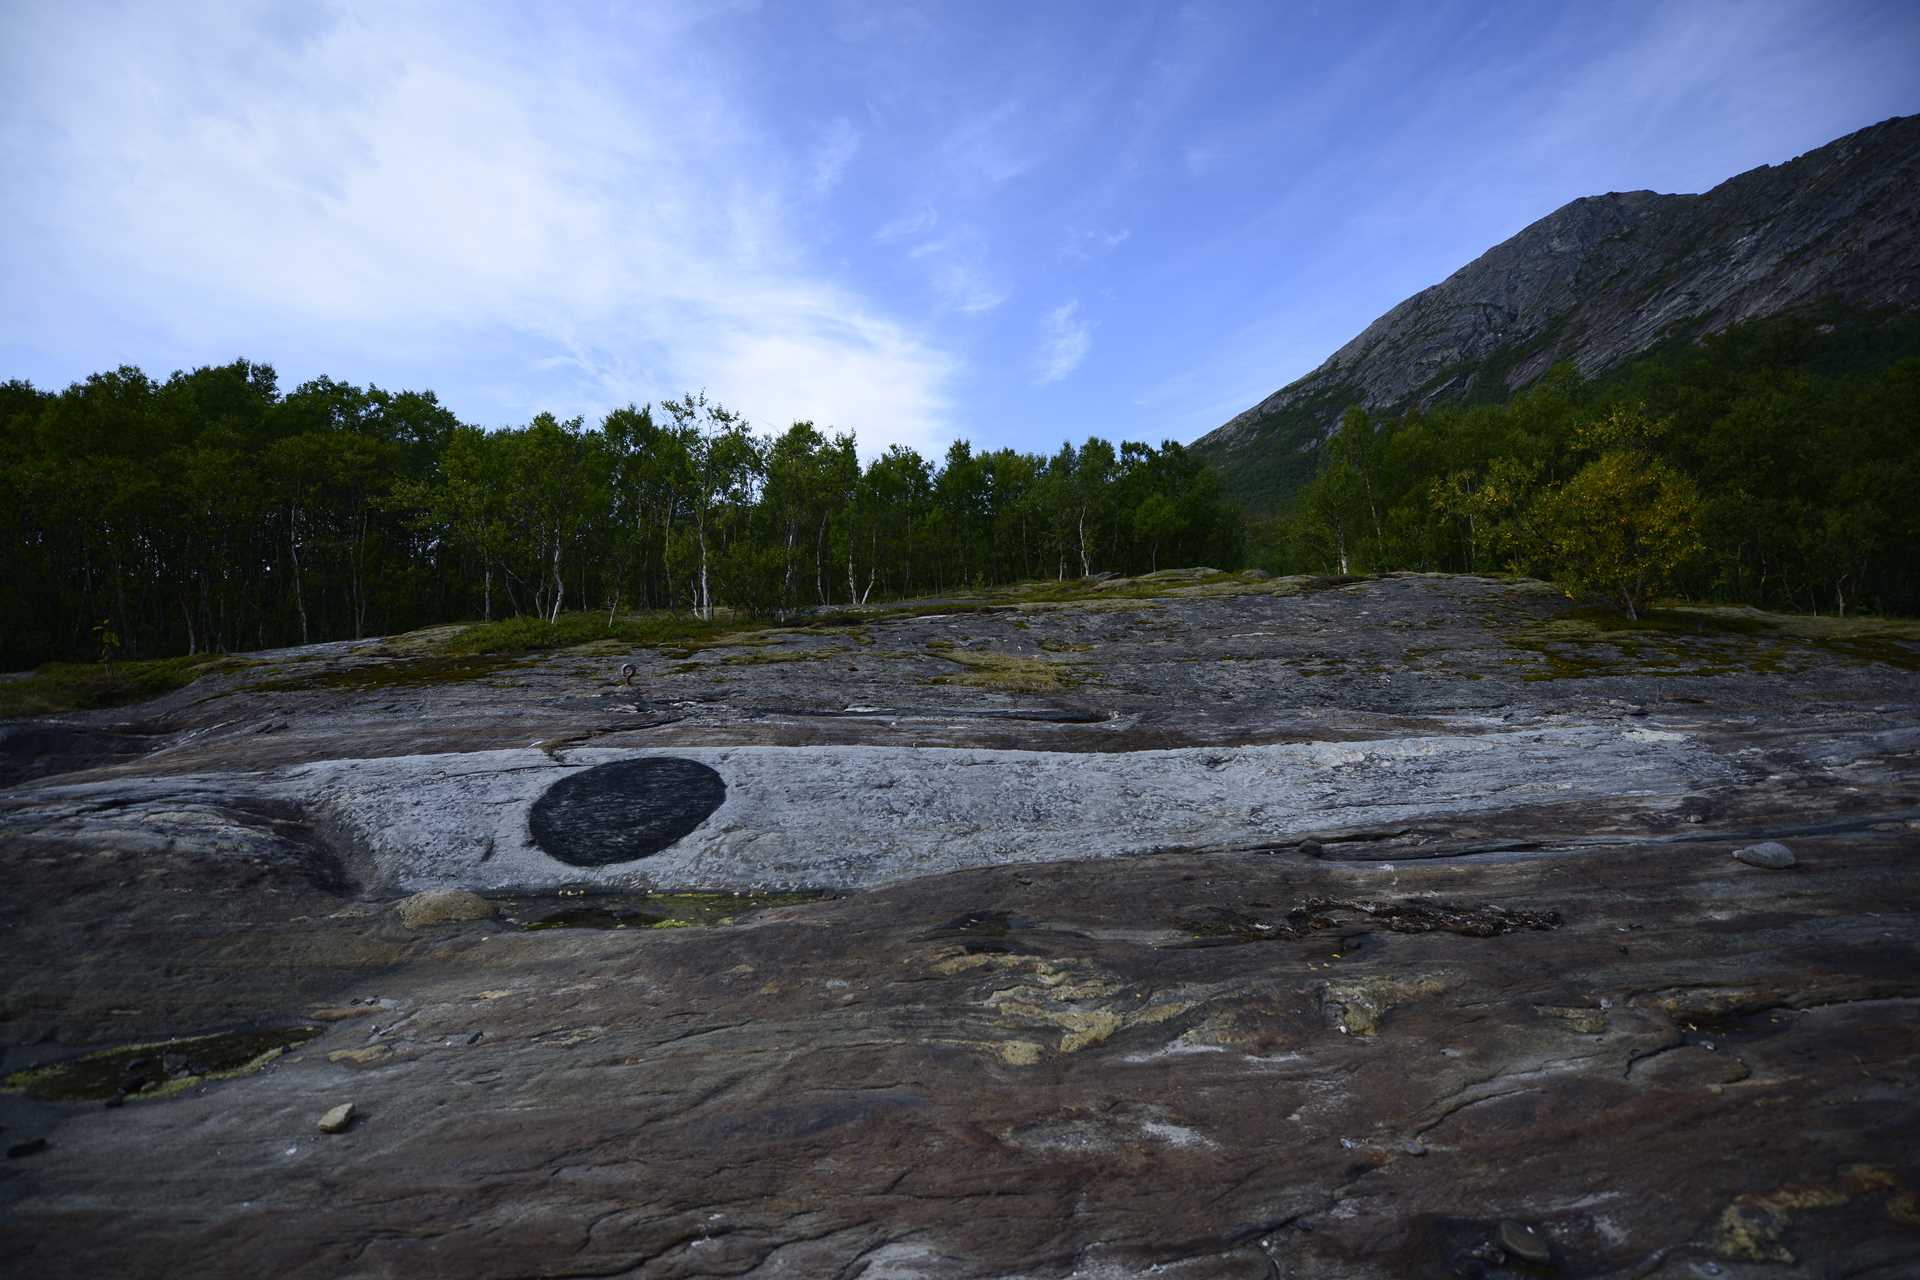 SEJTAR, Kjerringøy Land Art Biennal, Norway, 2019. Installation by Karl Chilcott.